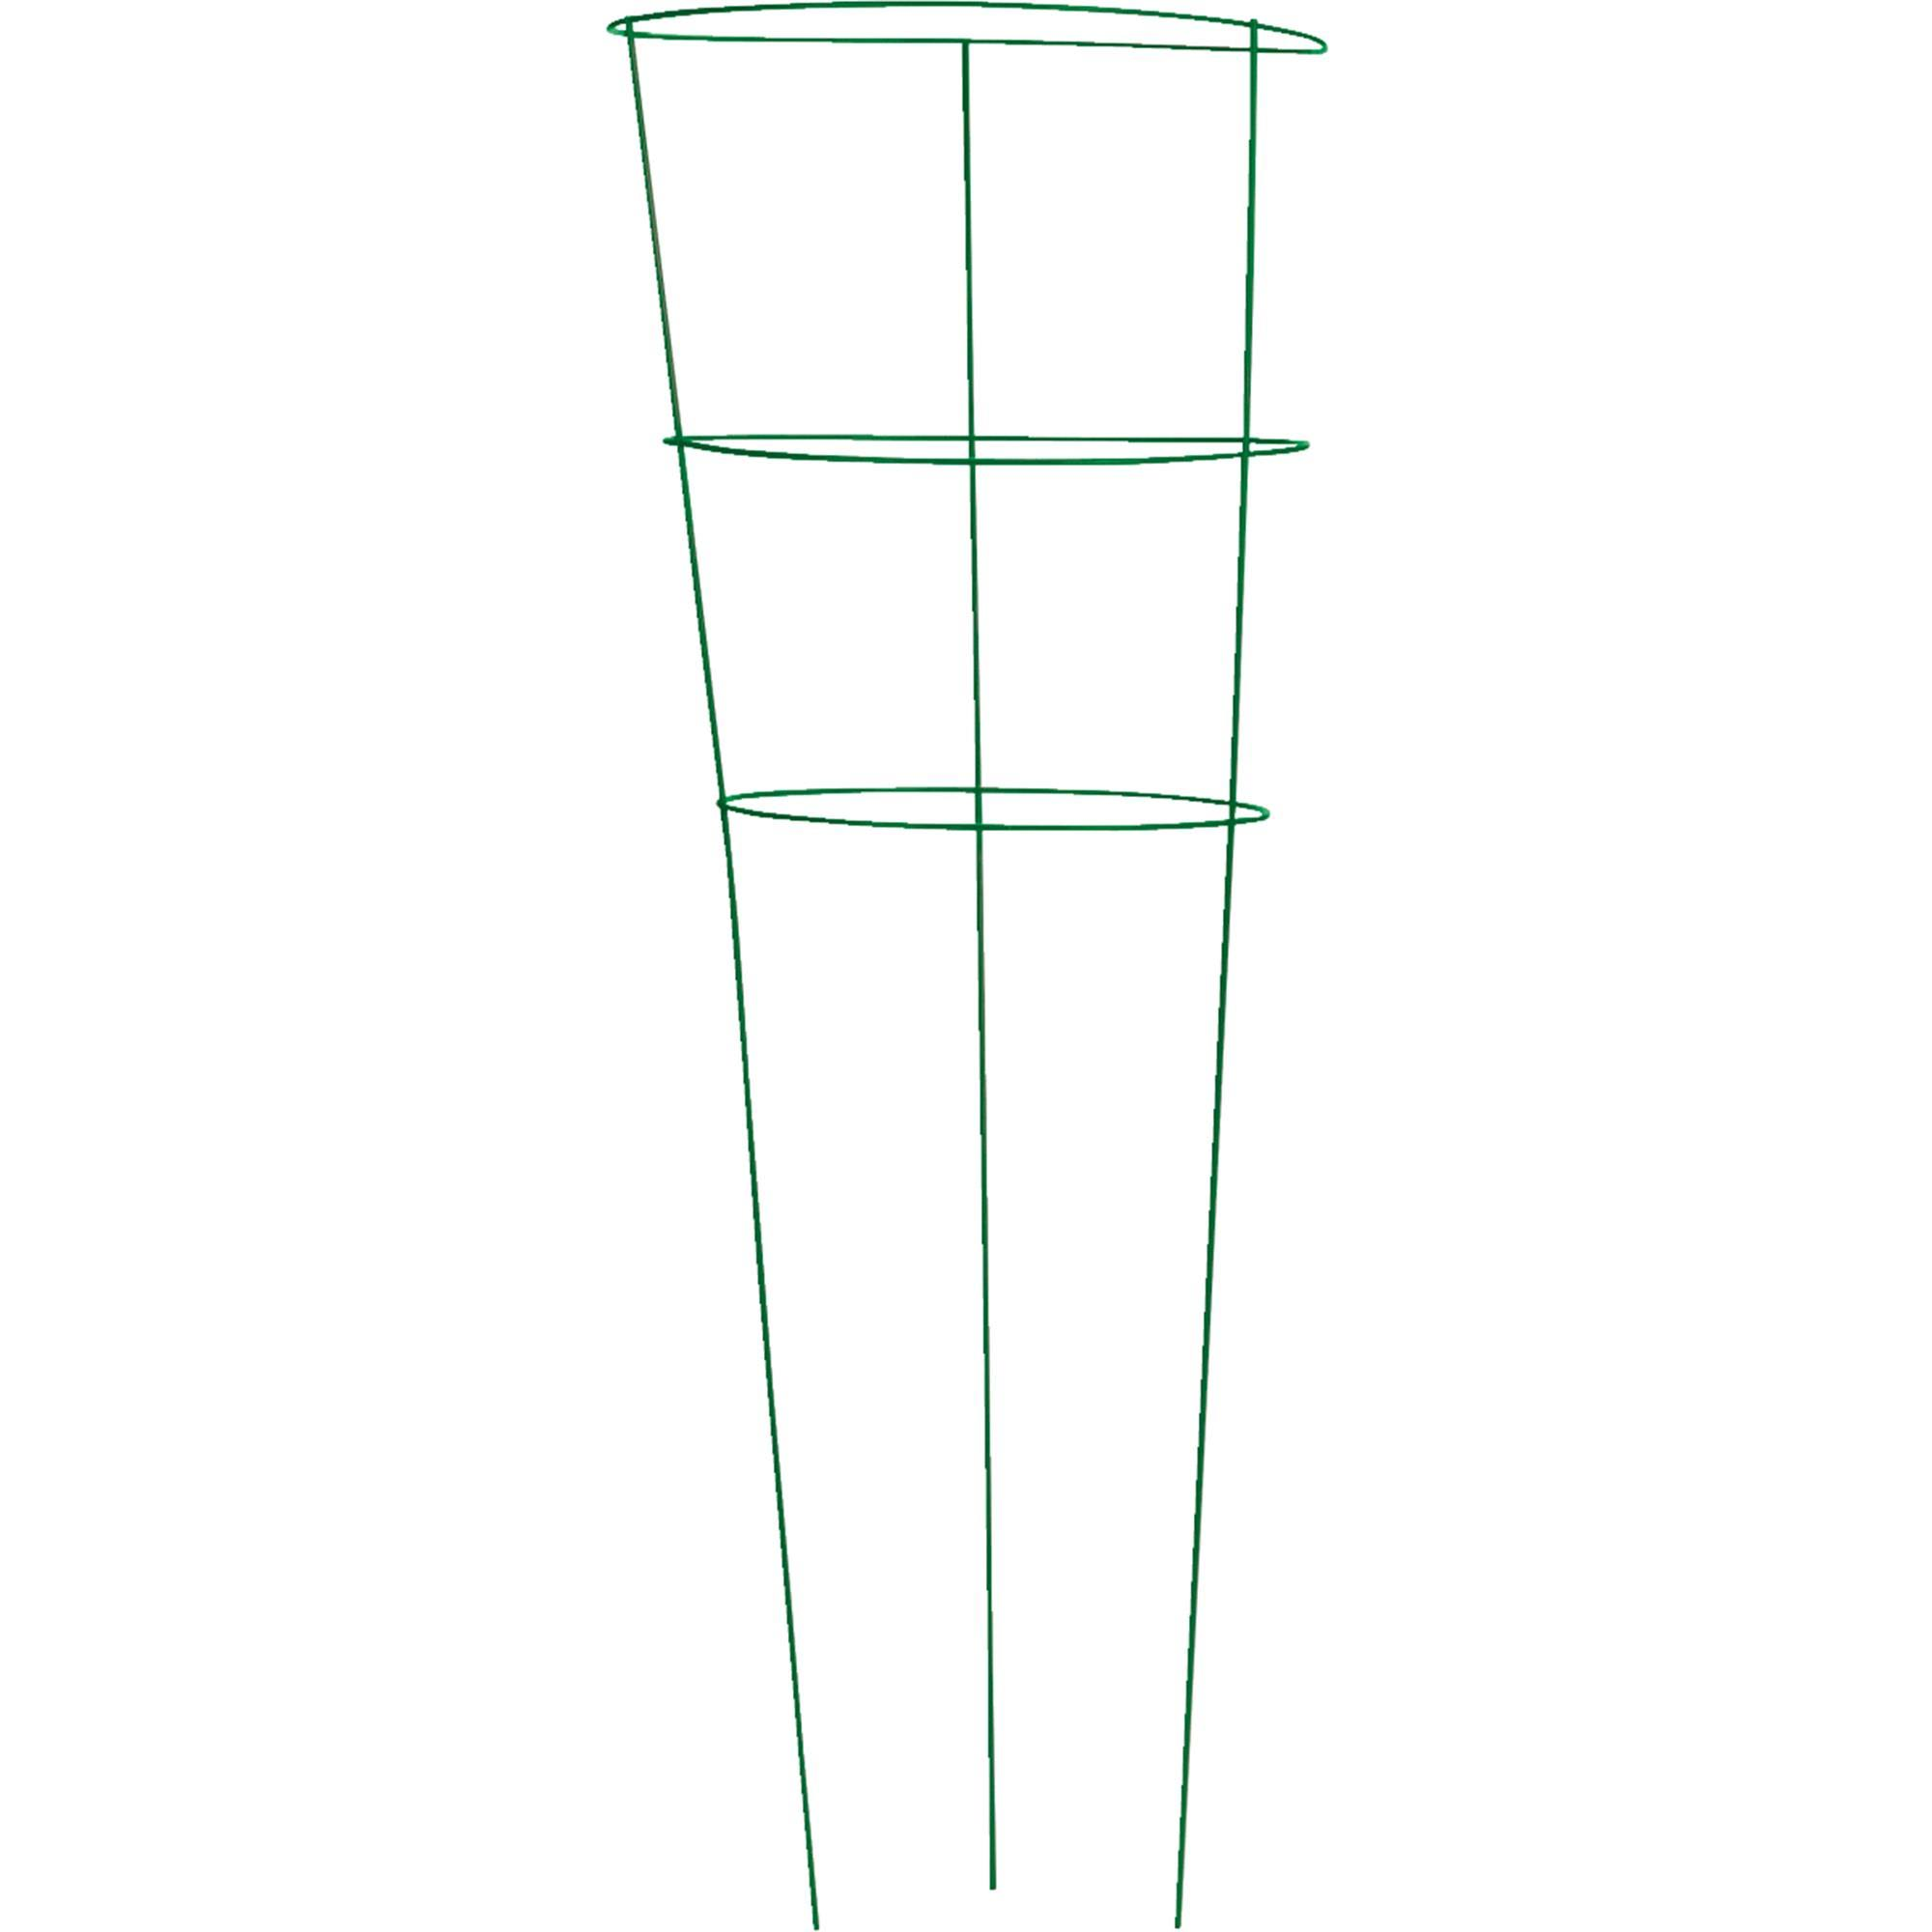 Panacea Products Tomato Cage Green 42 L